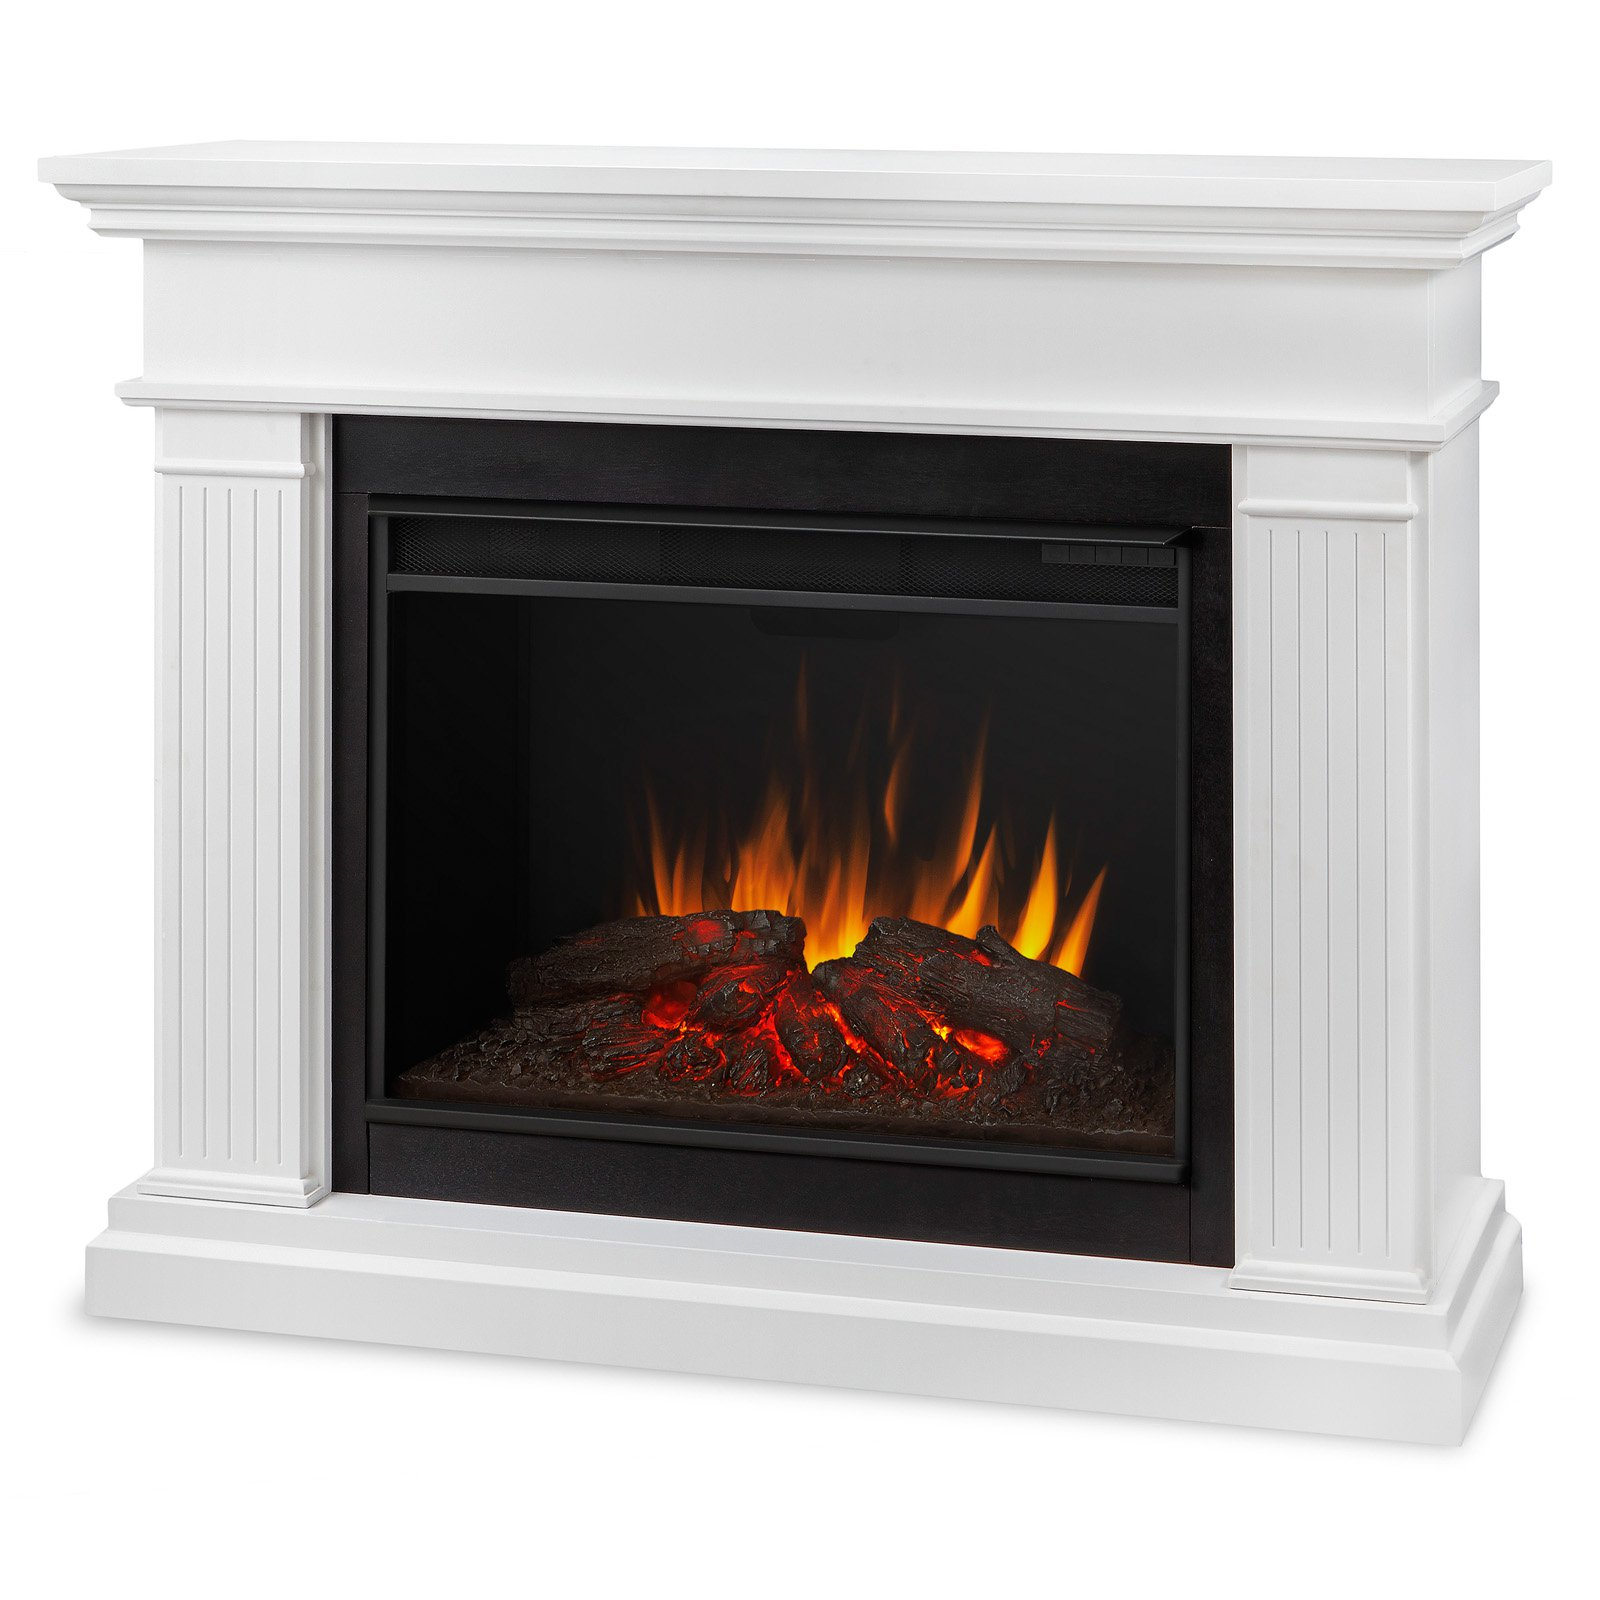 Real Flame Kennedy Grand Electric Fireplace - Walmart.com